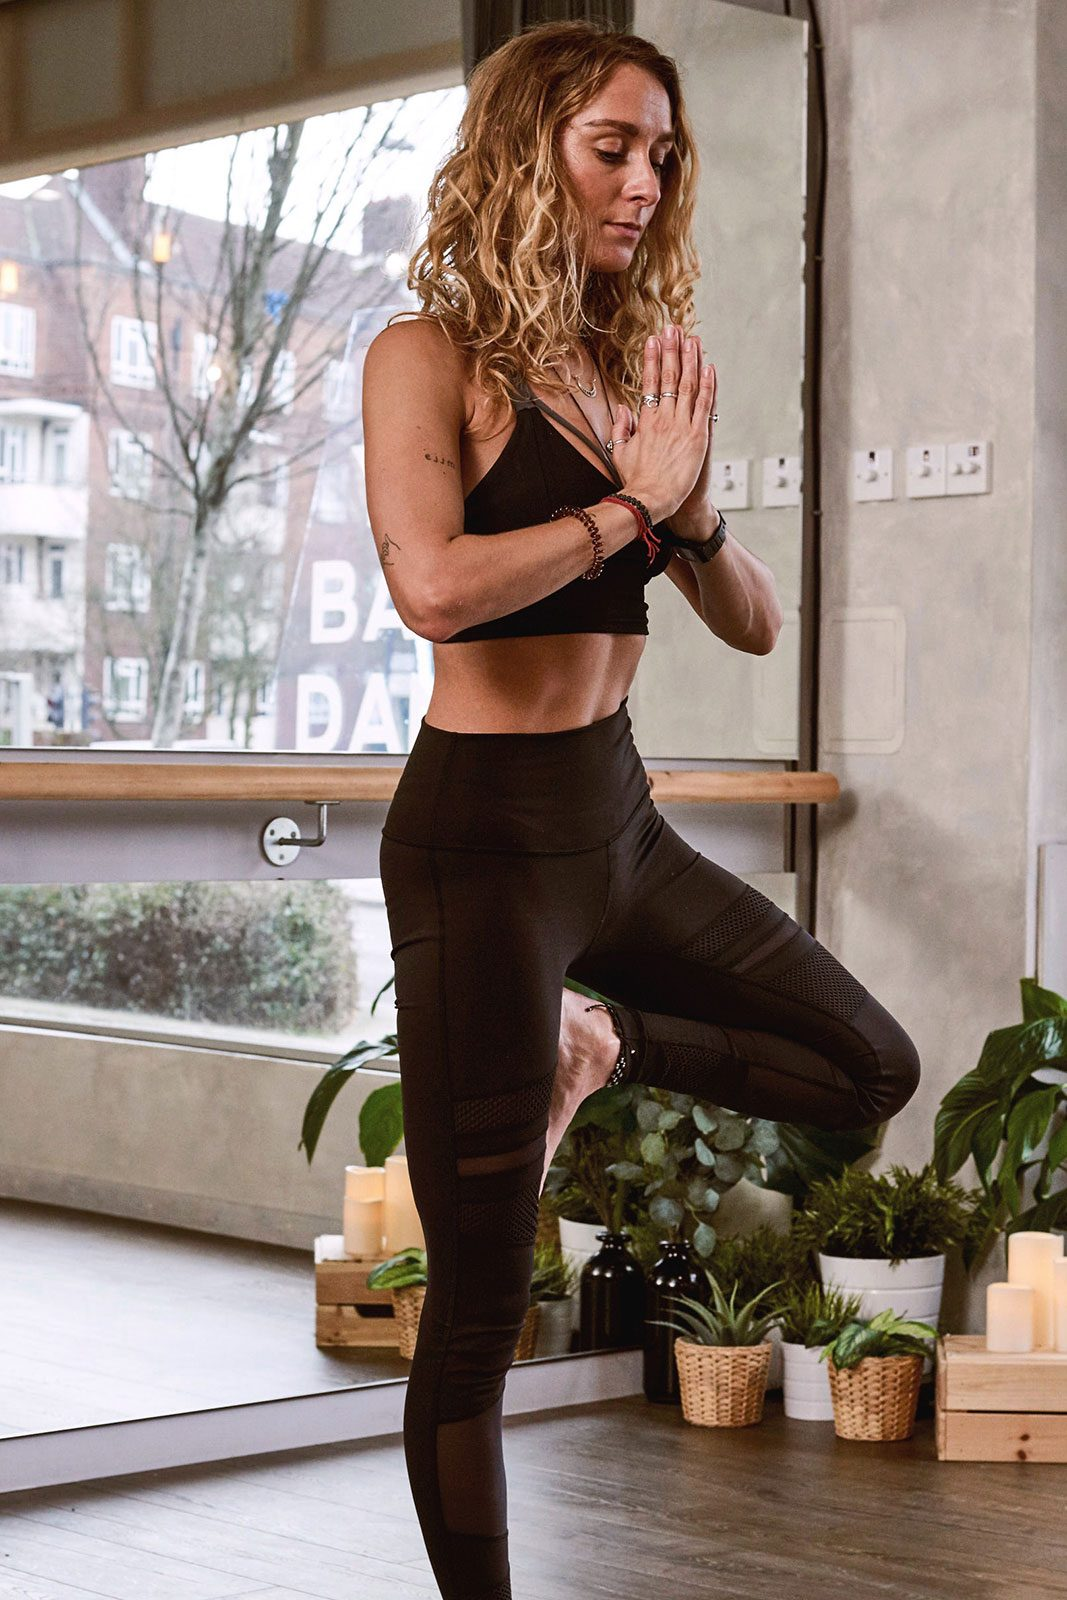 Yoga instructor with long hair, standing in a yoga posture